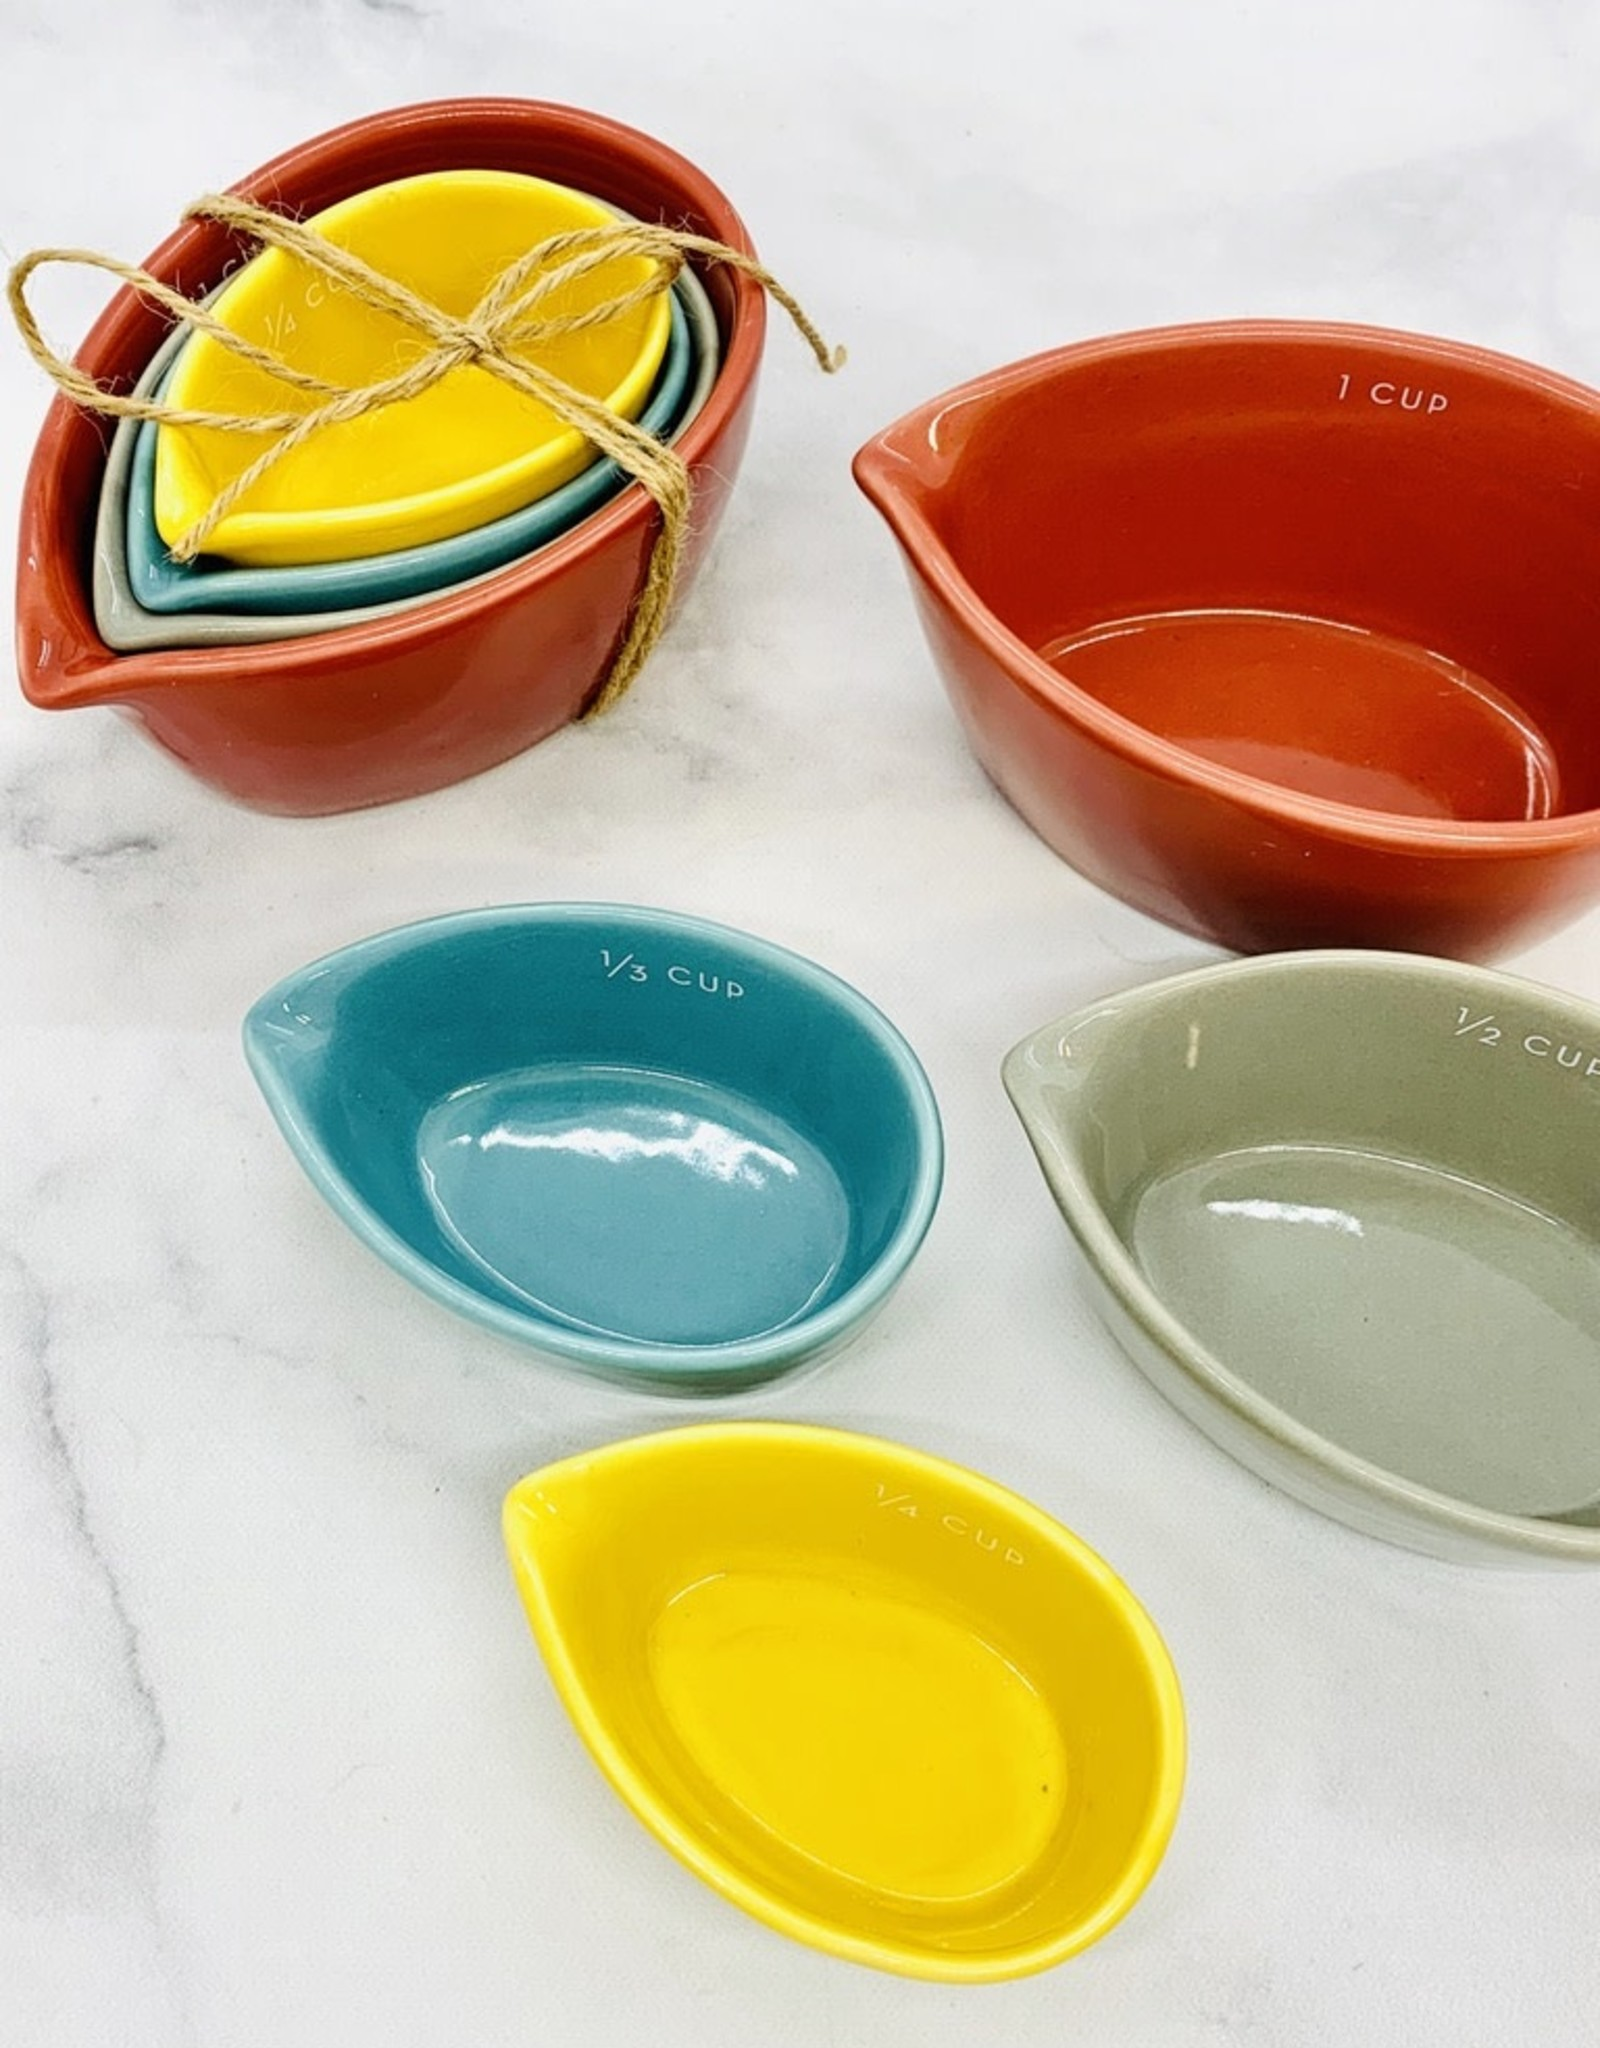 Canyon Measuring Cups